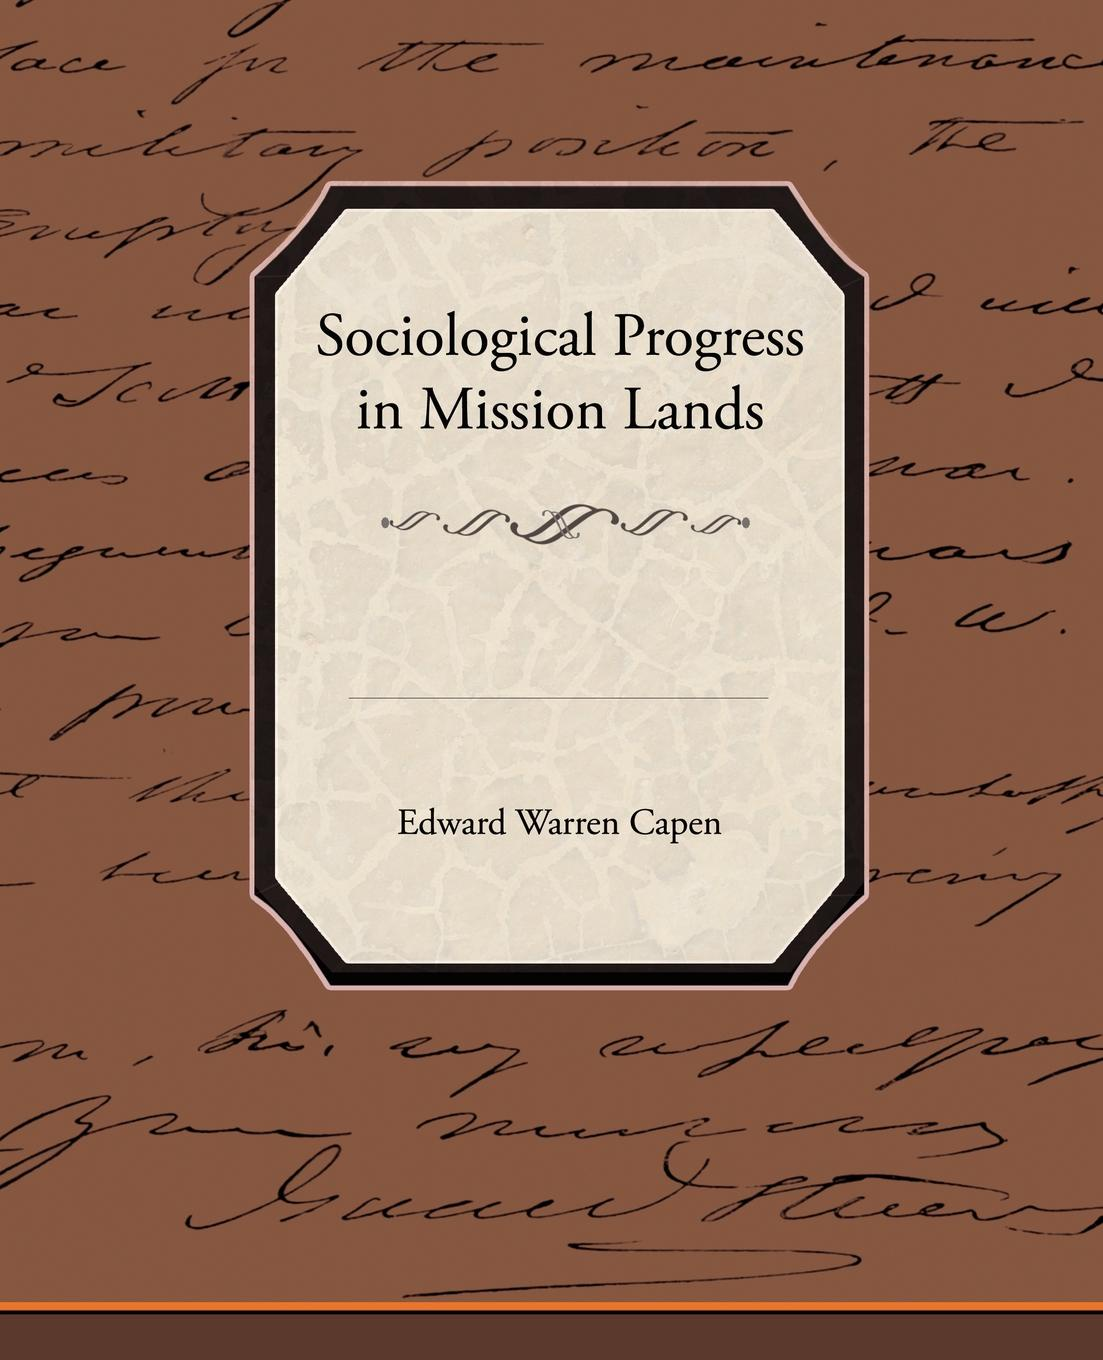 цена Edward Warren Capen Sociological Progress in Mission Lands онлайн в 2017 году